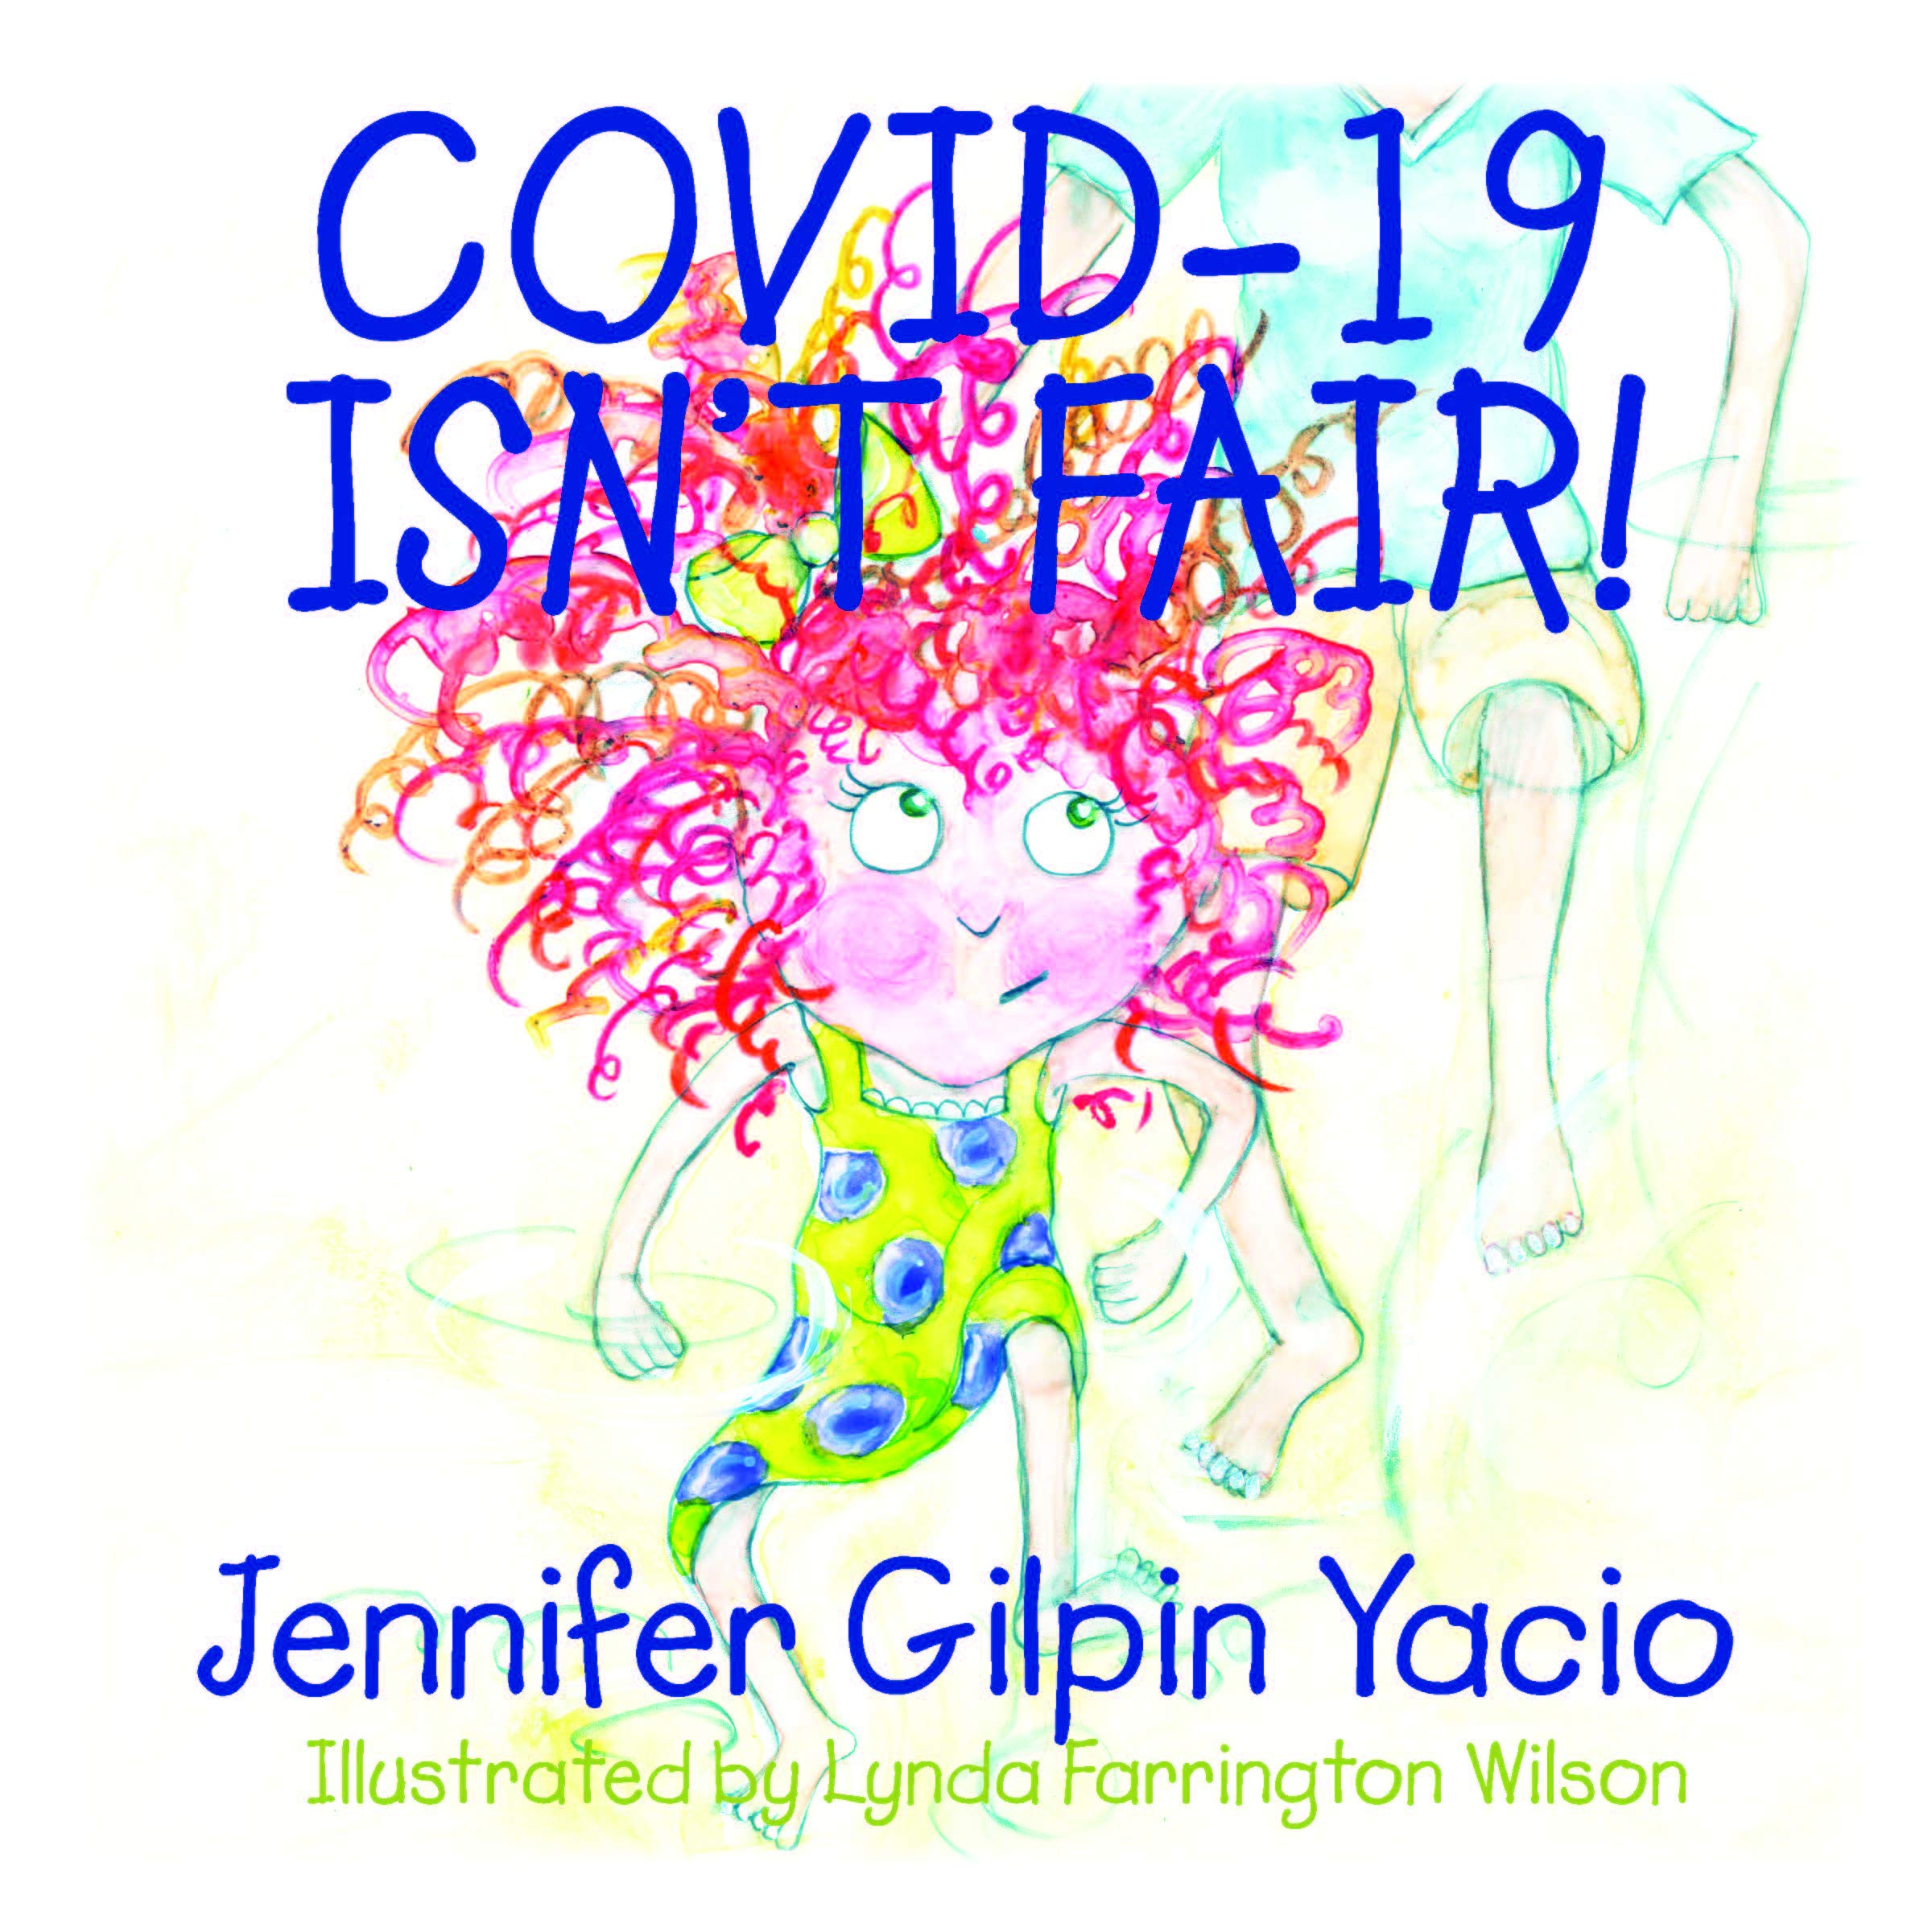 Covid-19 Isn't Fair!, by Jennifer Gilpin Yacio (Author), Farrington Wilson (Illustrator) - Survival (and Other) Books About the COVID-19 Coronavirus - Survival Books - Survival, Sustainable Living